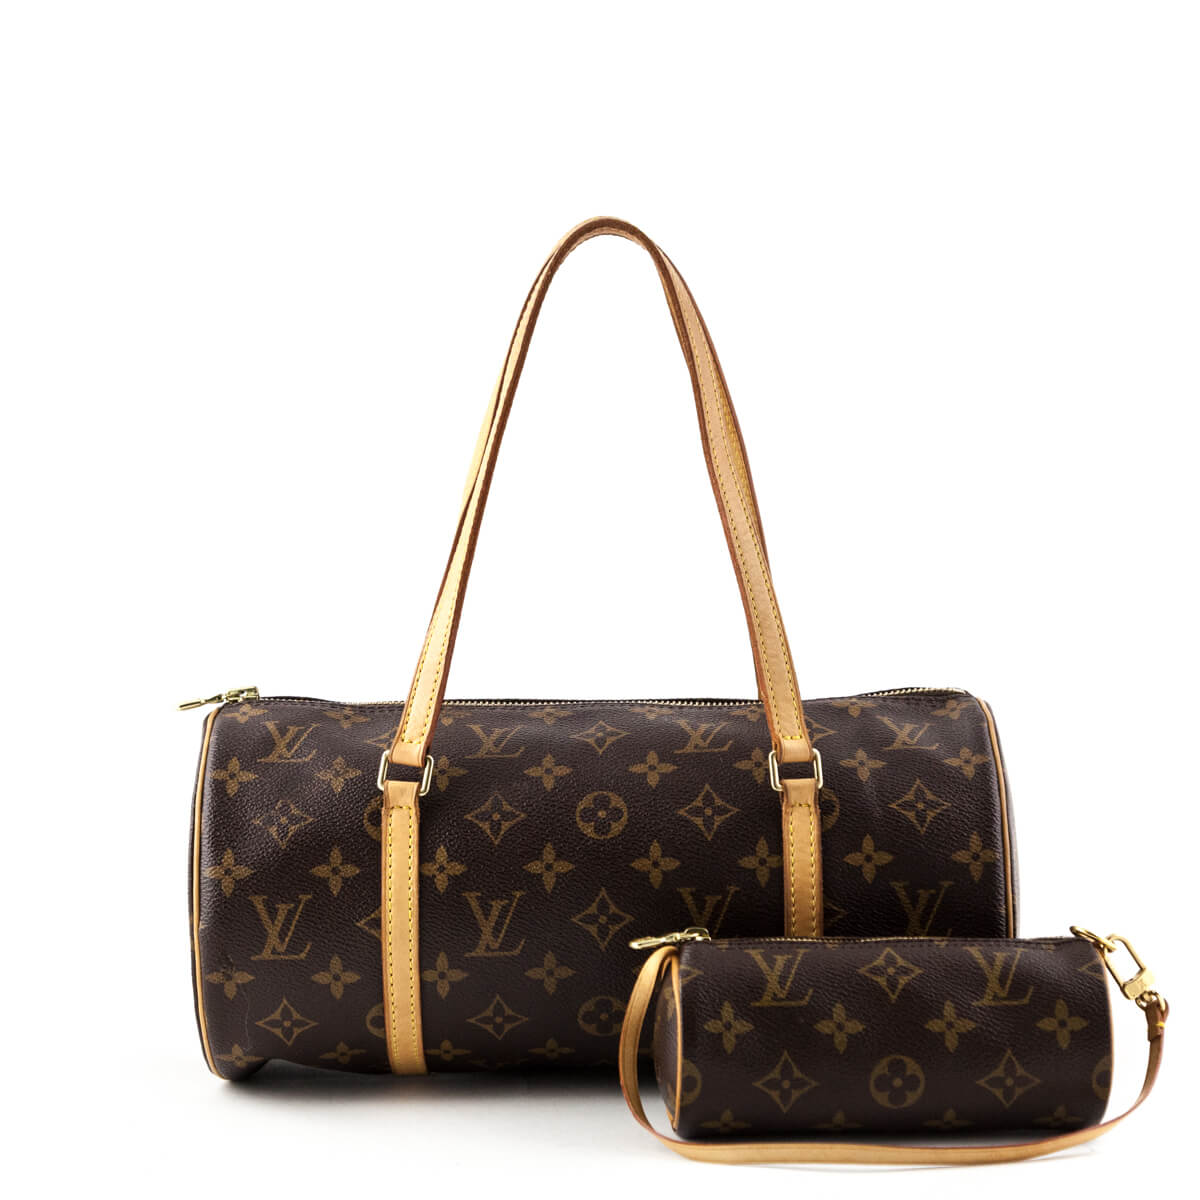 3cf45e703ef3 Louis Vuitton Monogram Papillon 30 with Pouch - LOVE that BAG - Preowned  Authentic Designer Handbags ...